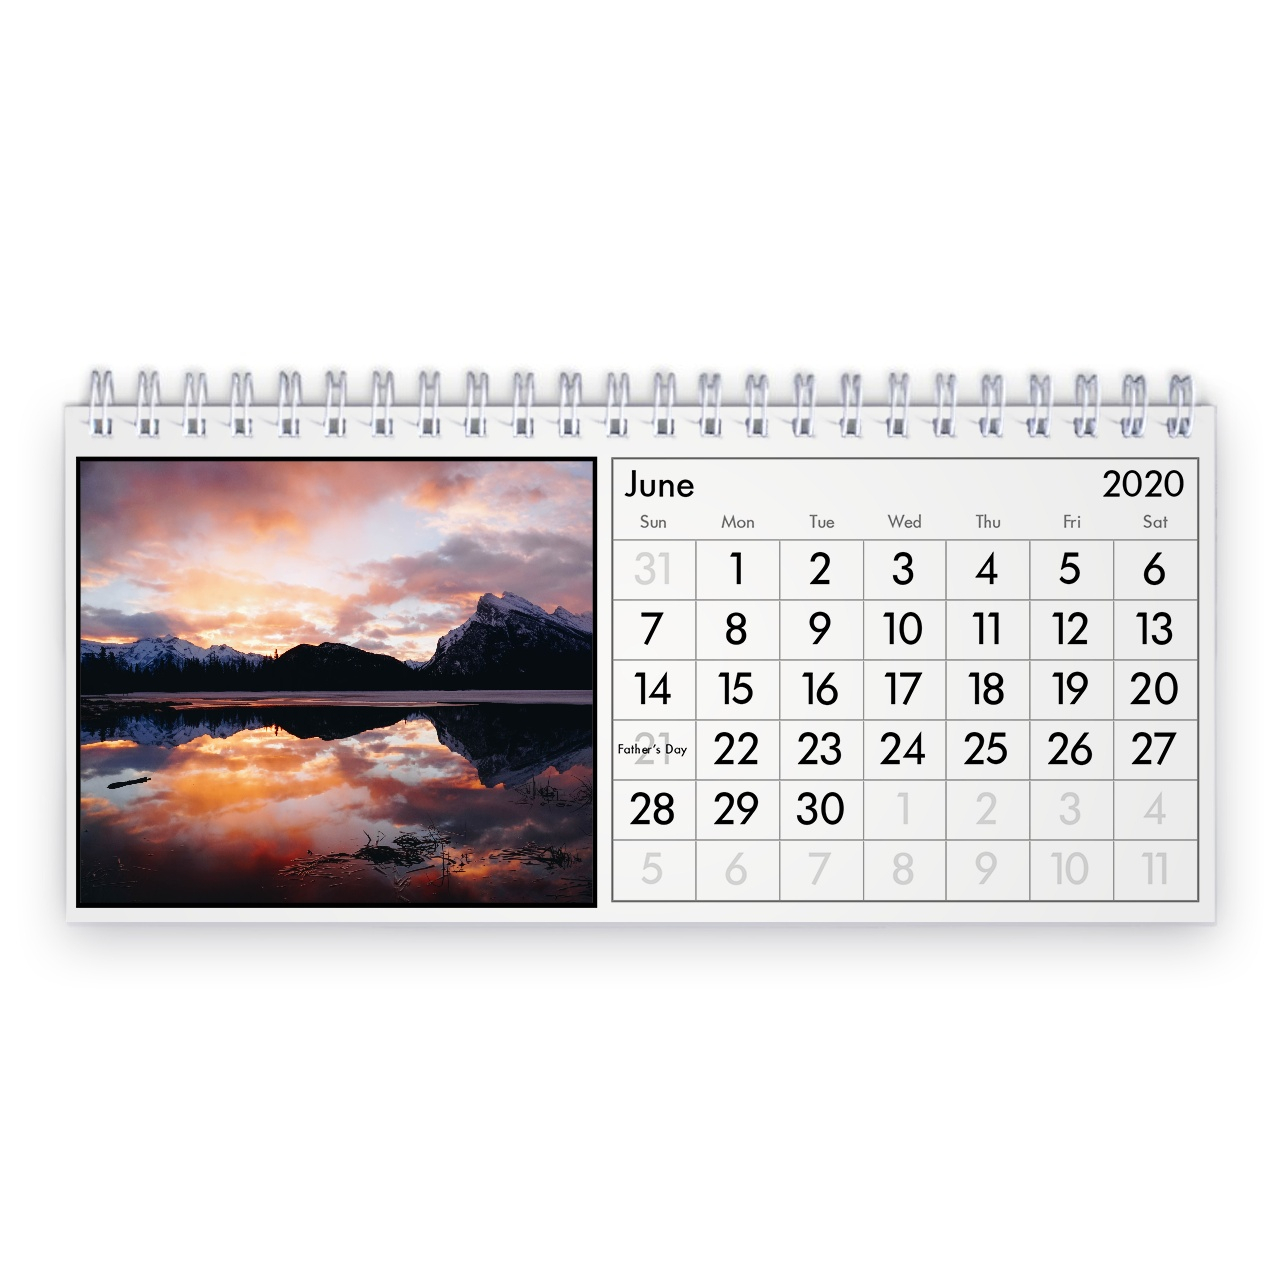 Canada 2021 Desk Calendar with regard to National Food Calendar 2021